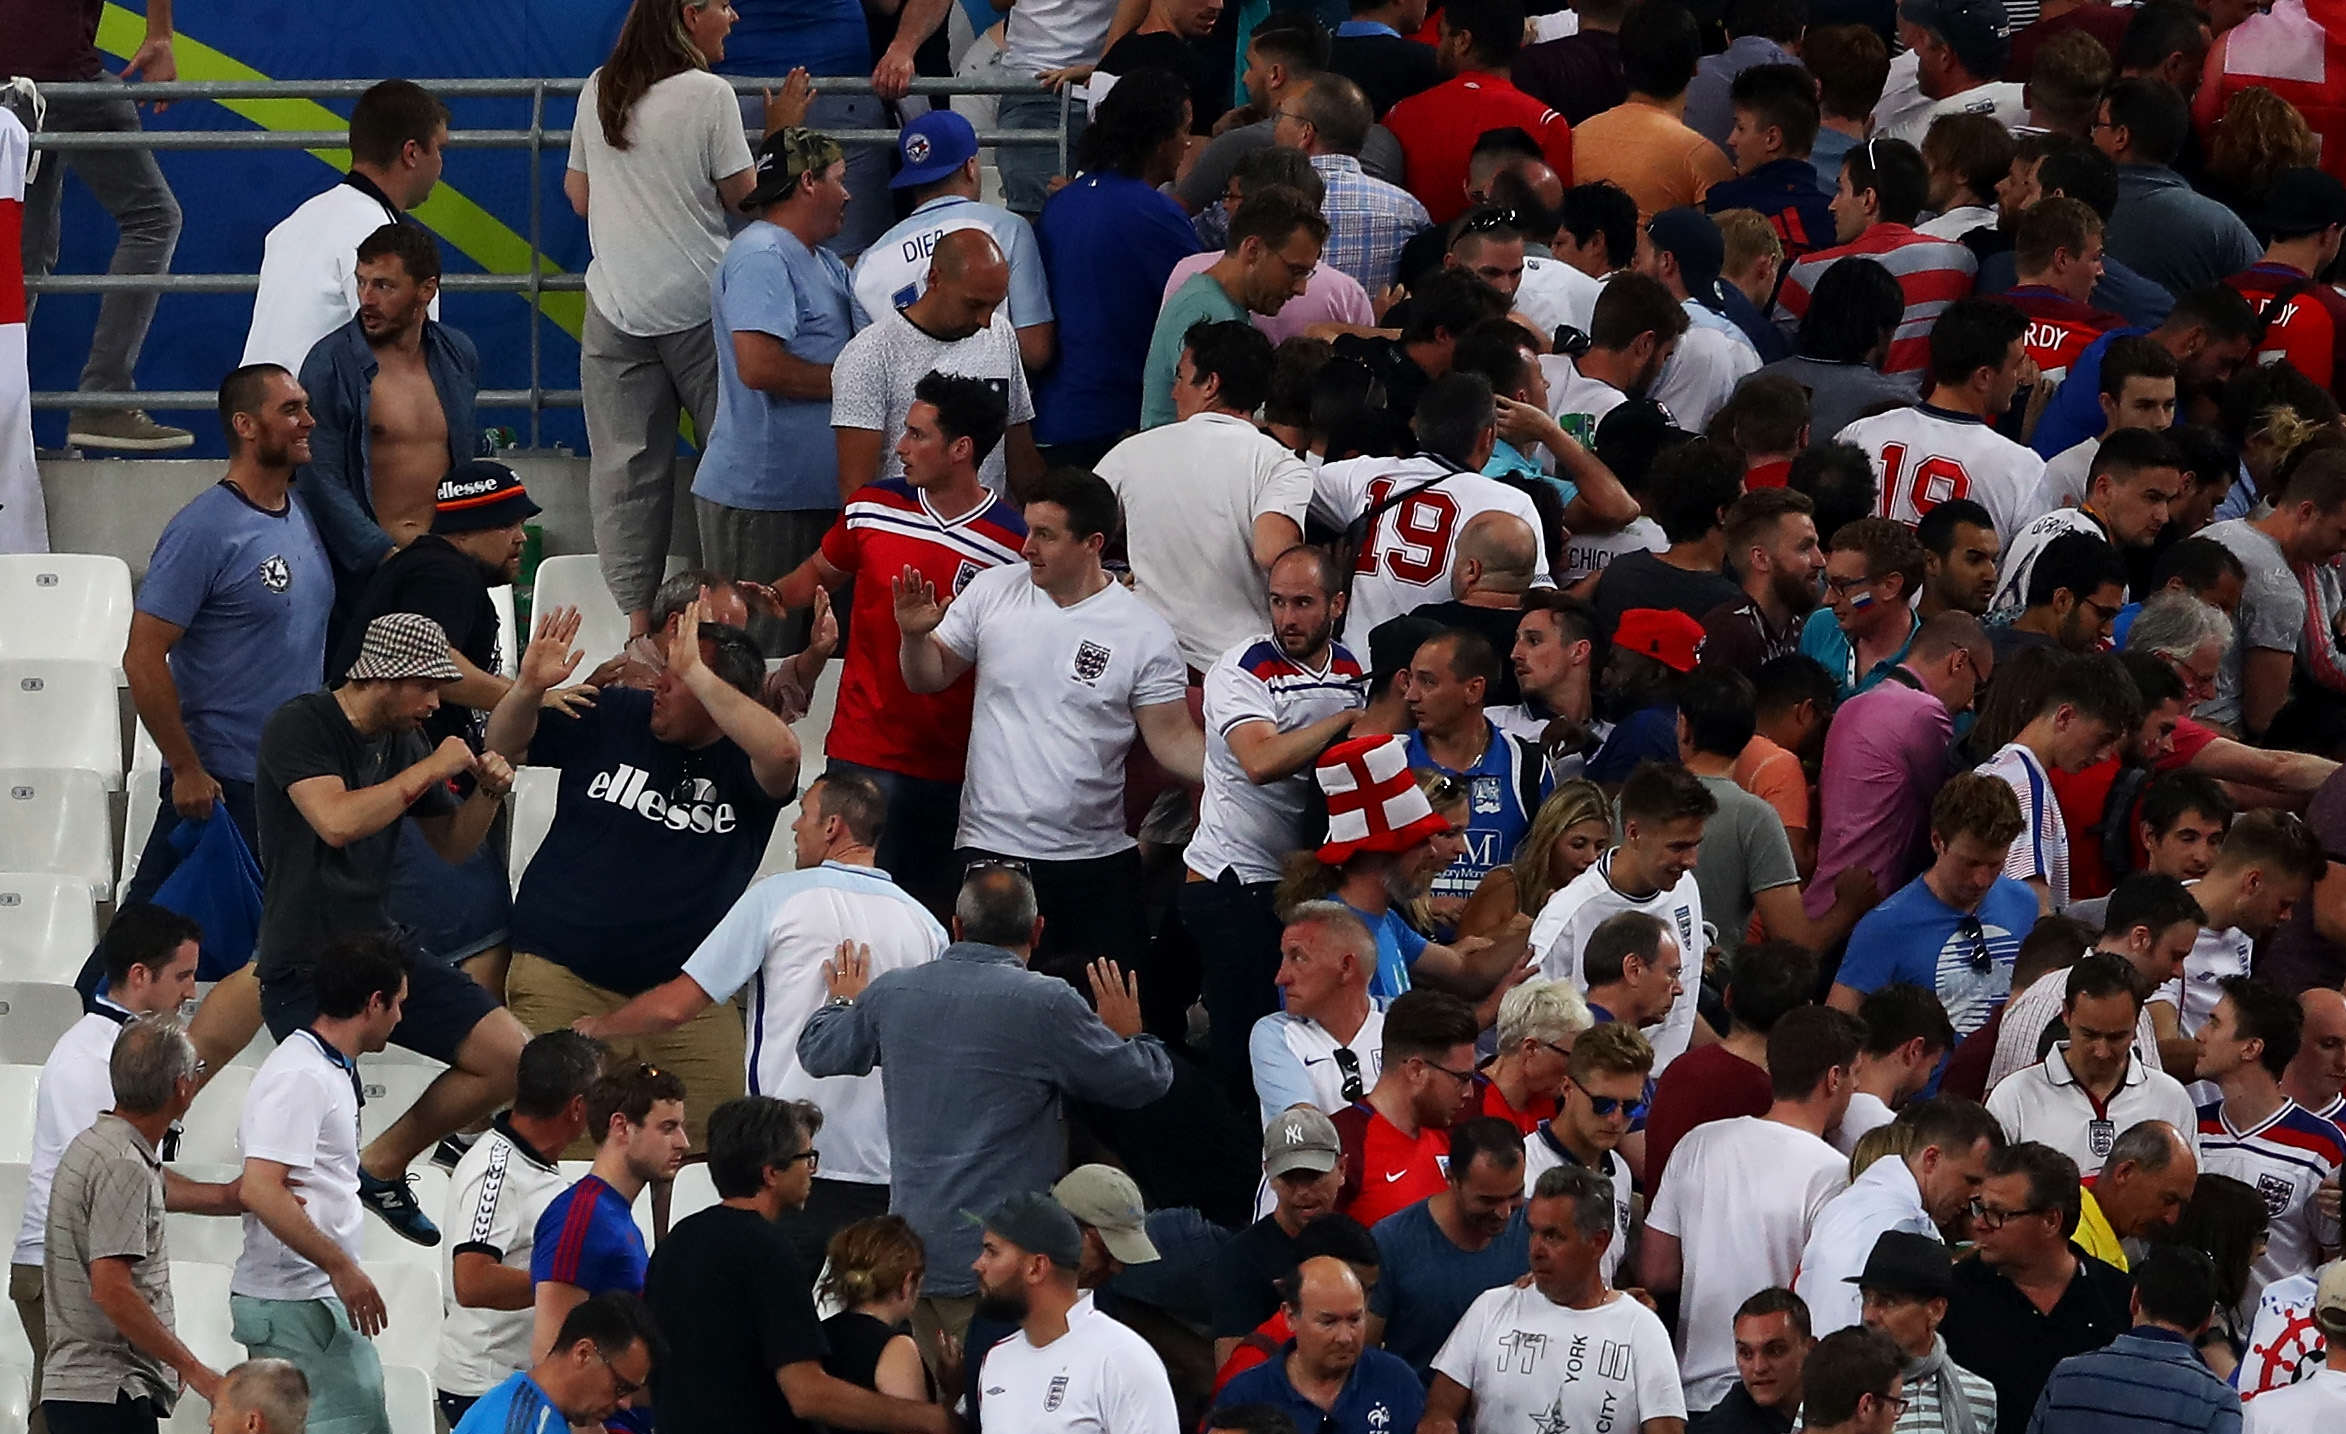 Russian MP Encourages Euros Football Hooligans To Keep It Up euro16fight33 2